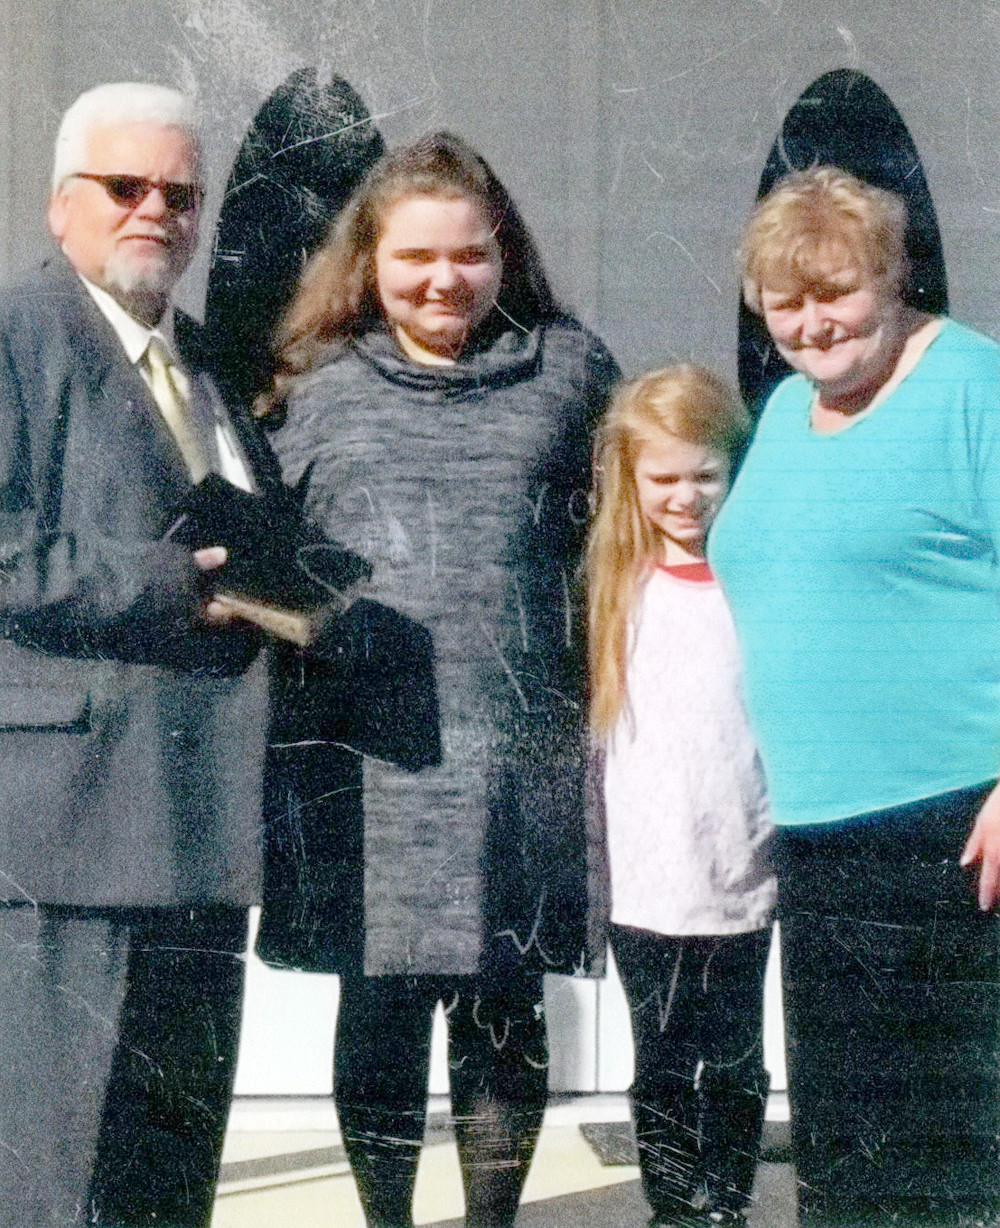 The Rev. Ronald L. Ledford, left, stands with his wife, Judy, right, and grandchildren Kaitlyn and Aubrey in front of Bethel Baptist Church.